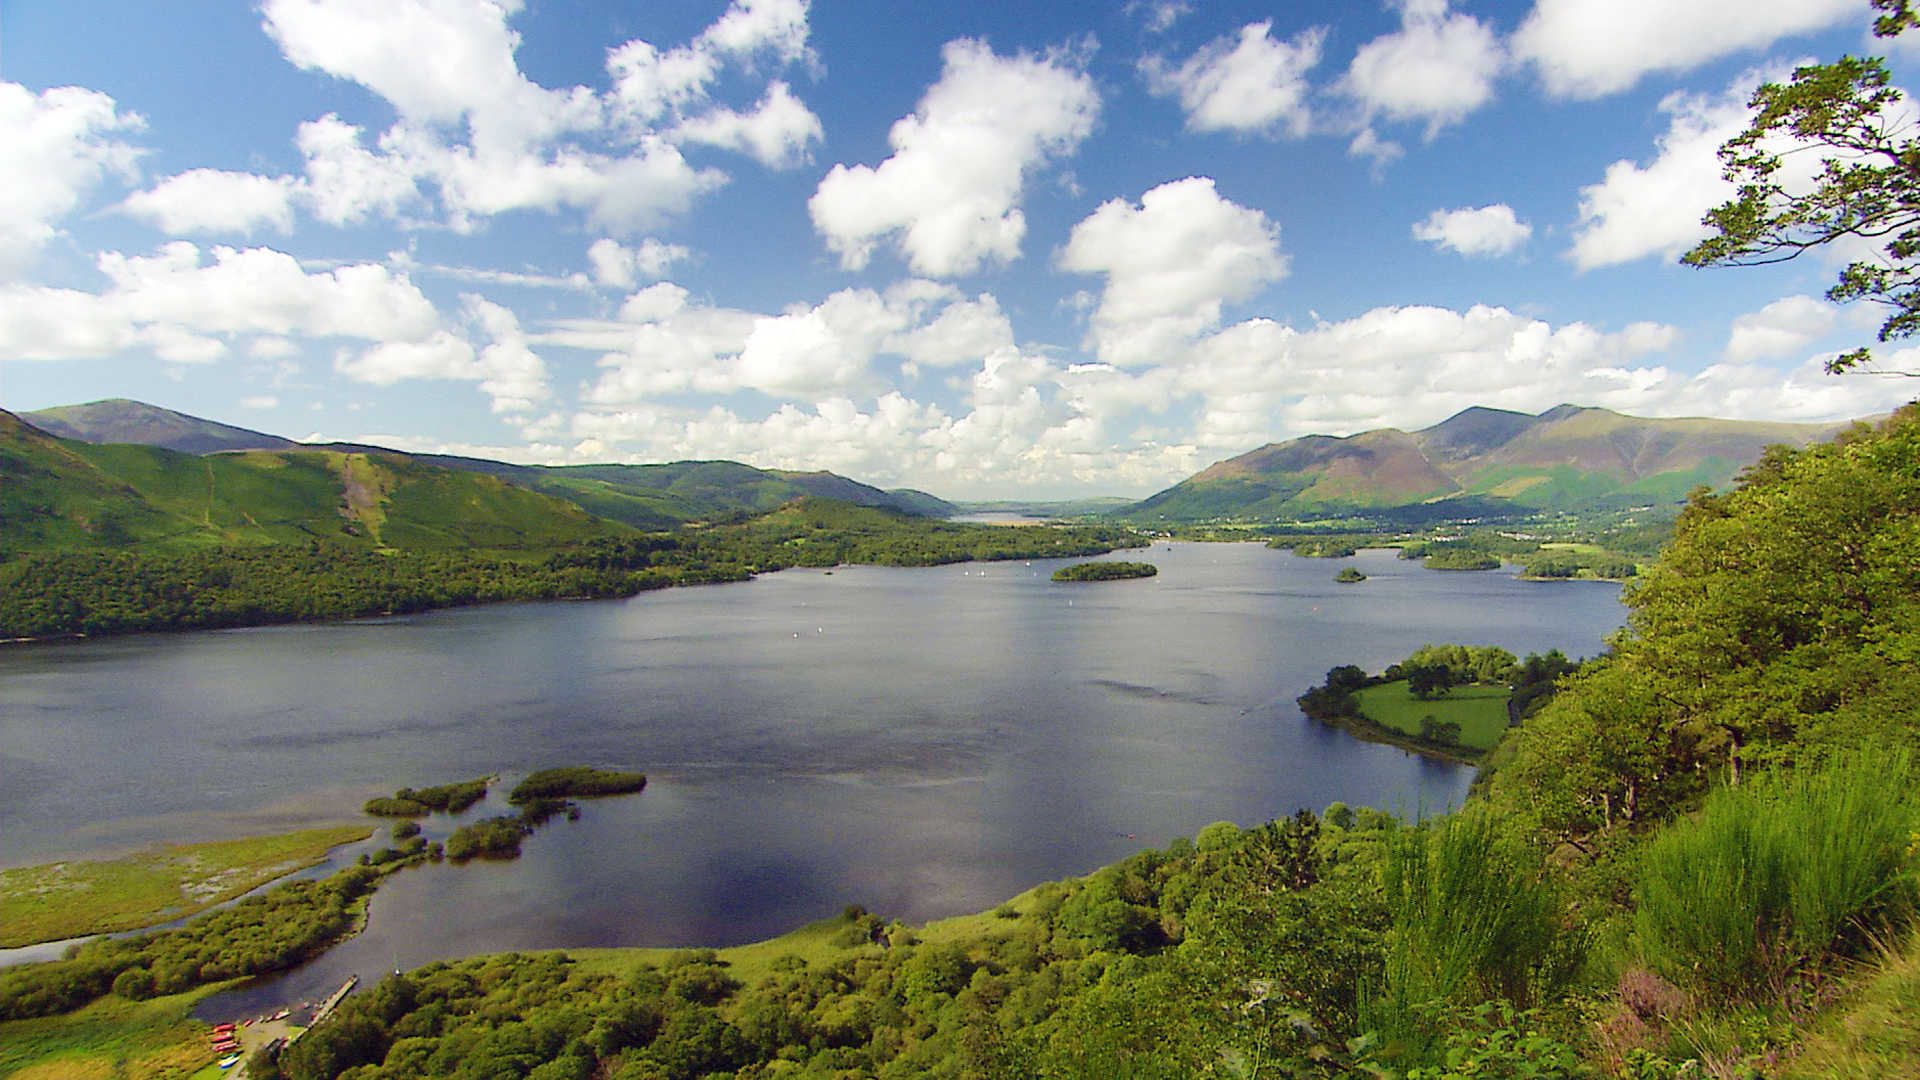 North England: Derwentwater in the Lake District